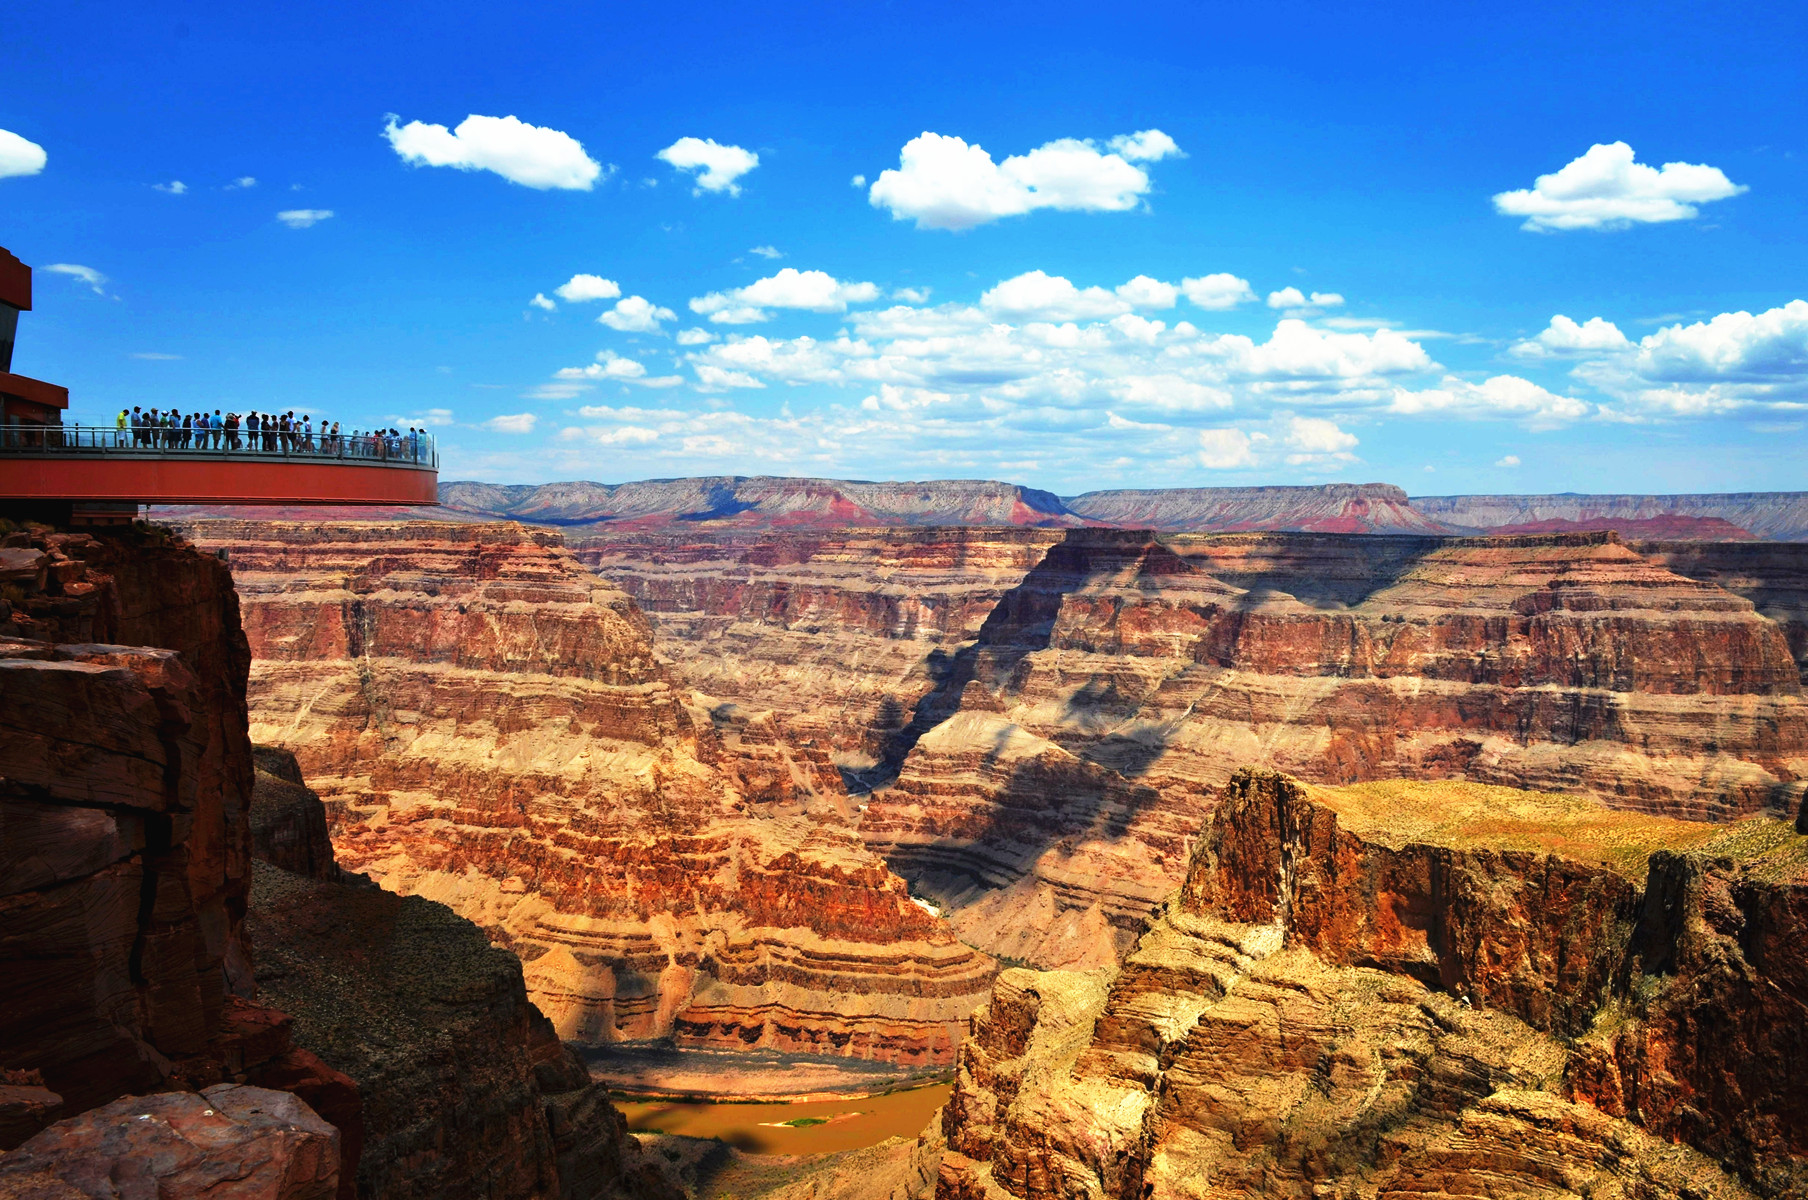 Grand Canyon Tour in Arizona